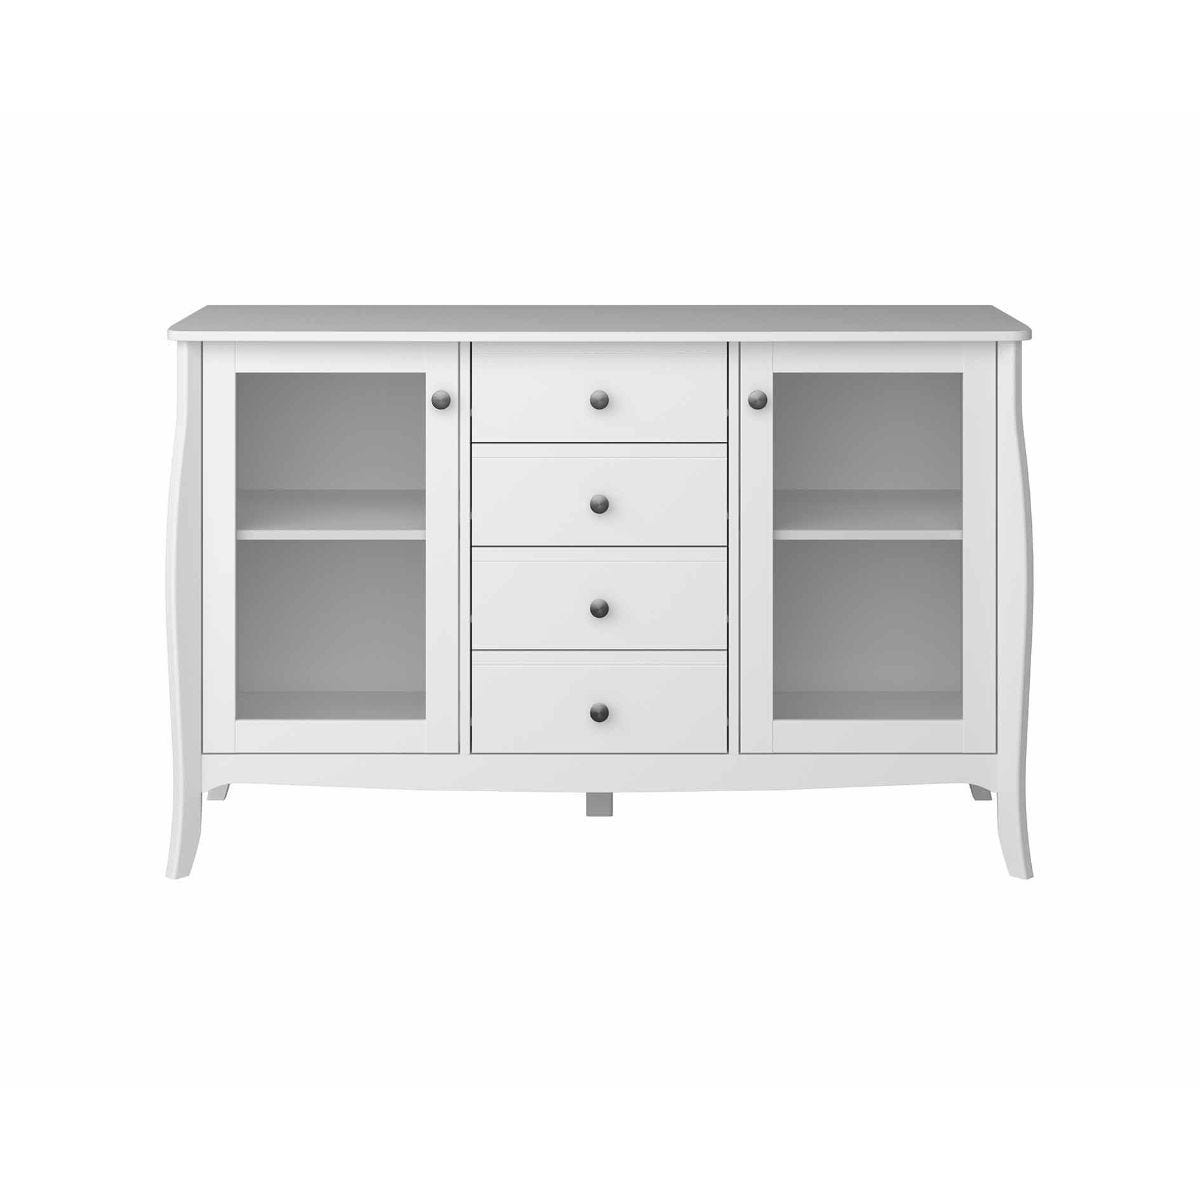 Steens Baroque Sideboard Large, White